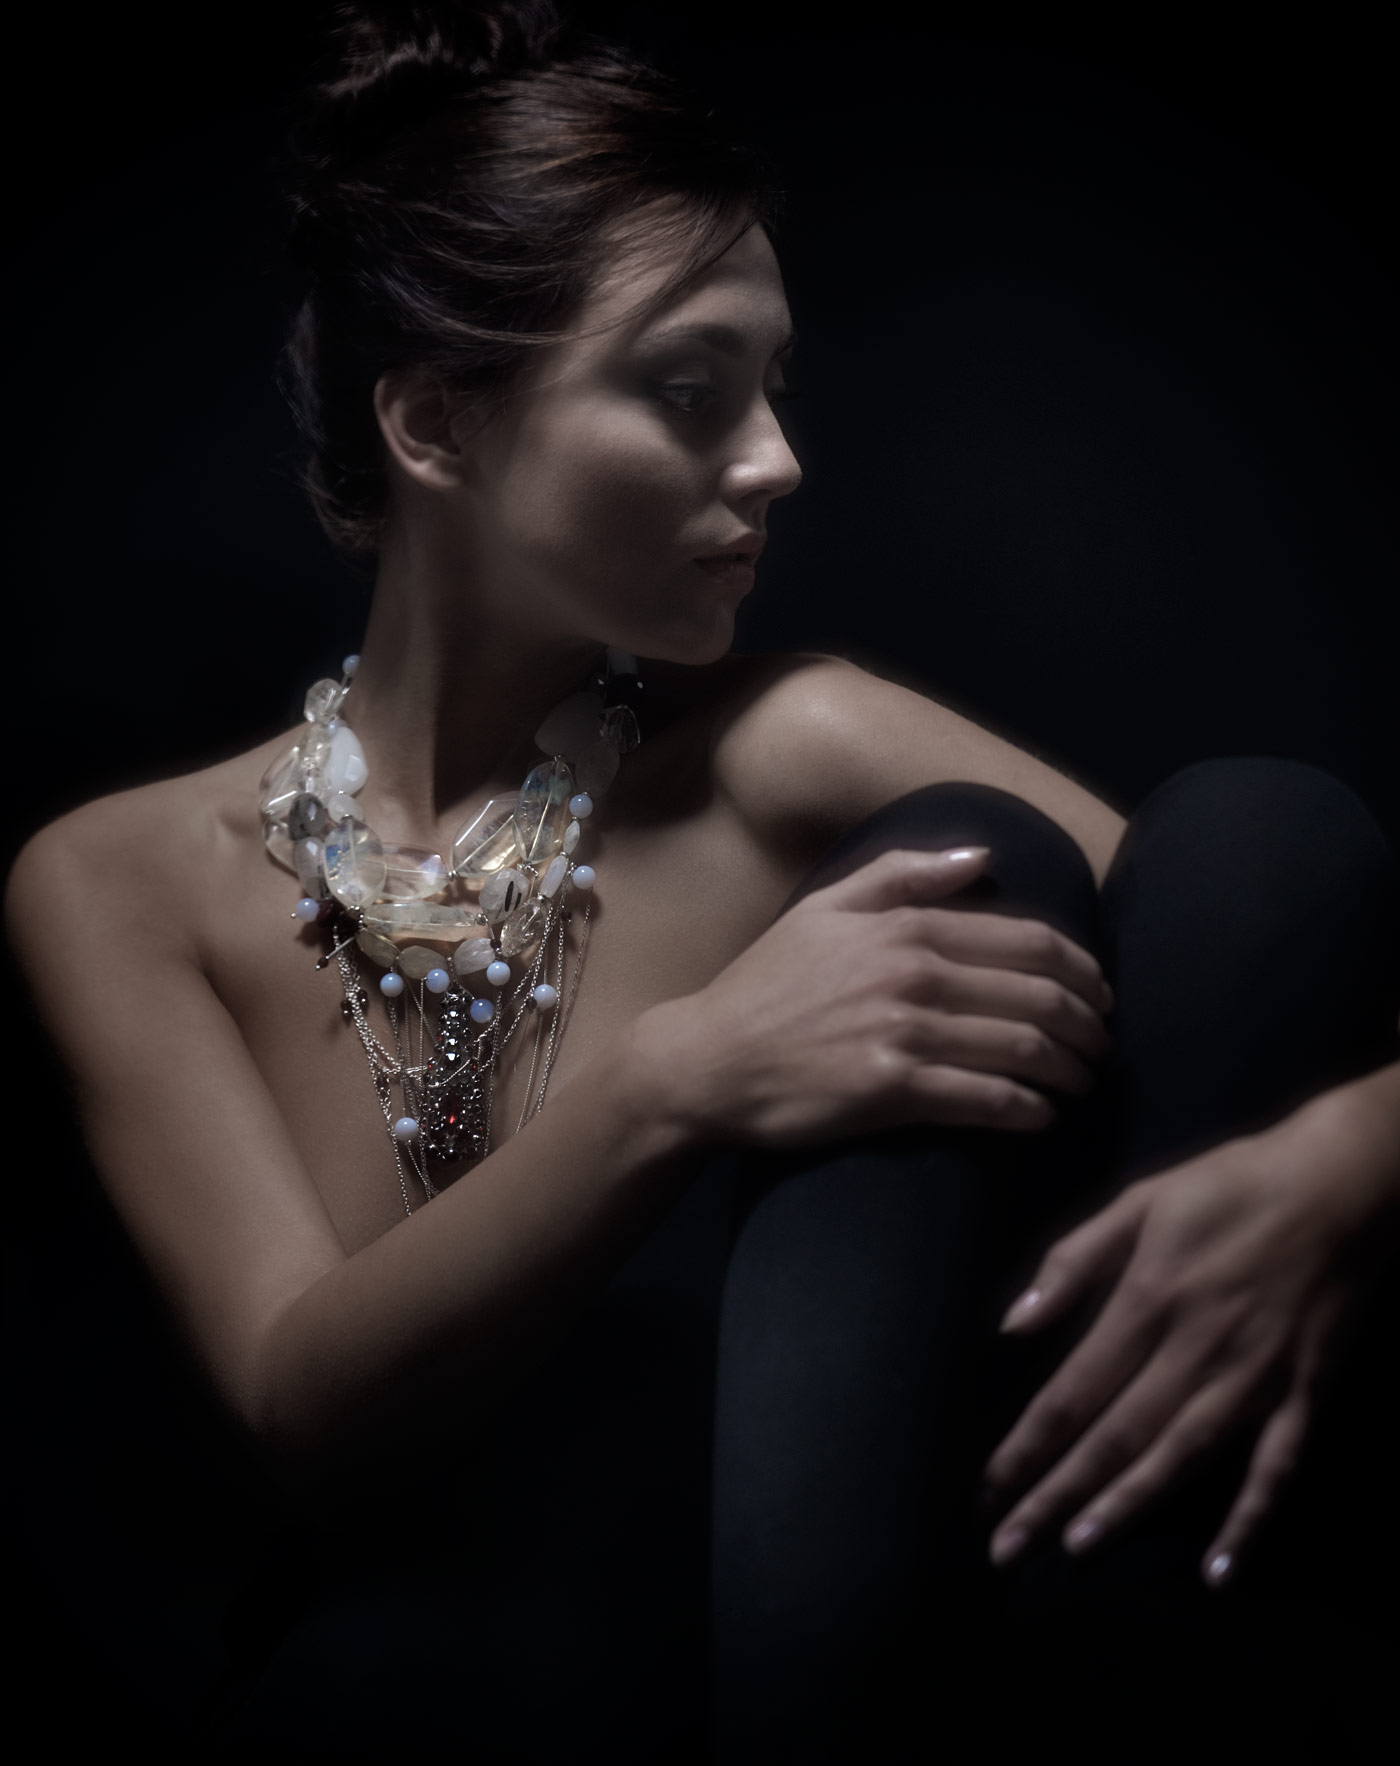 Rasa_Juskeviciene_Jewellery_3